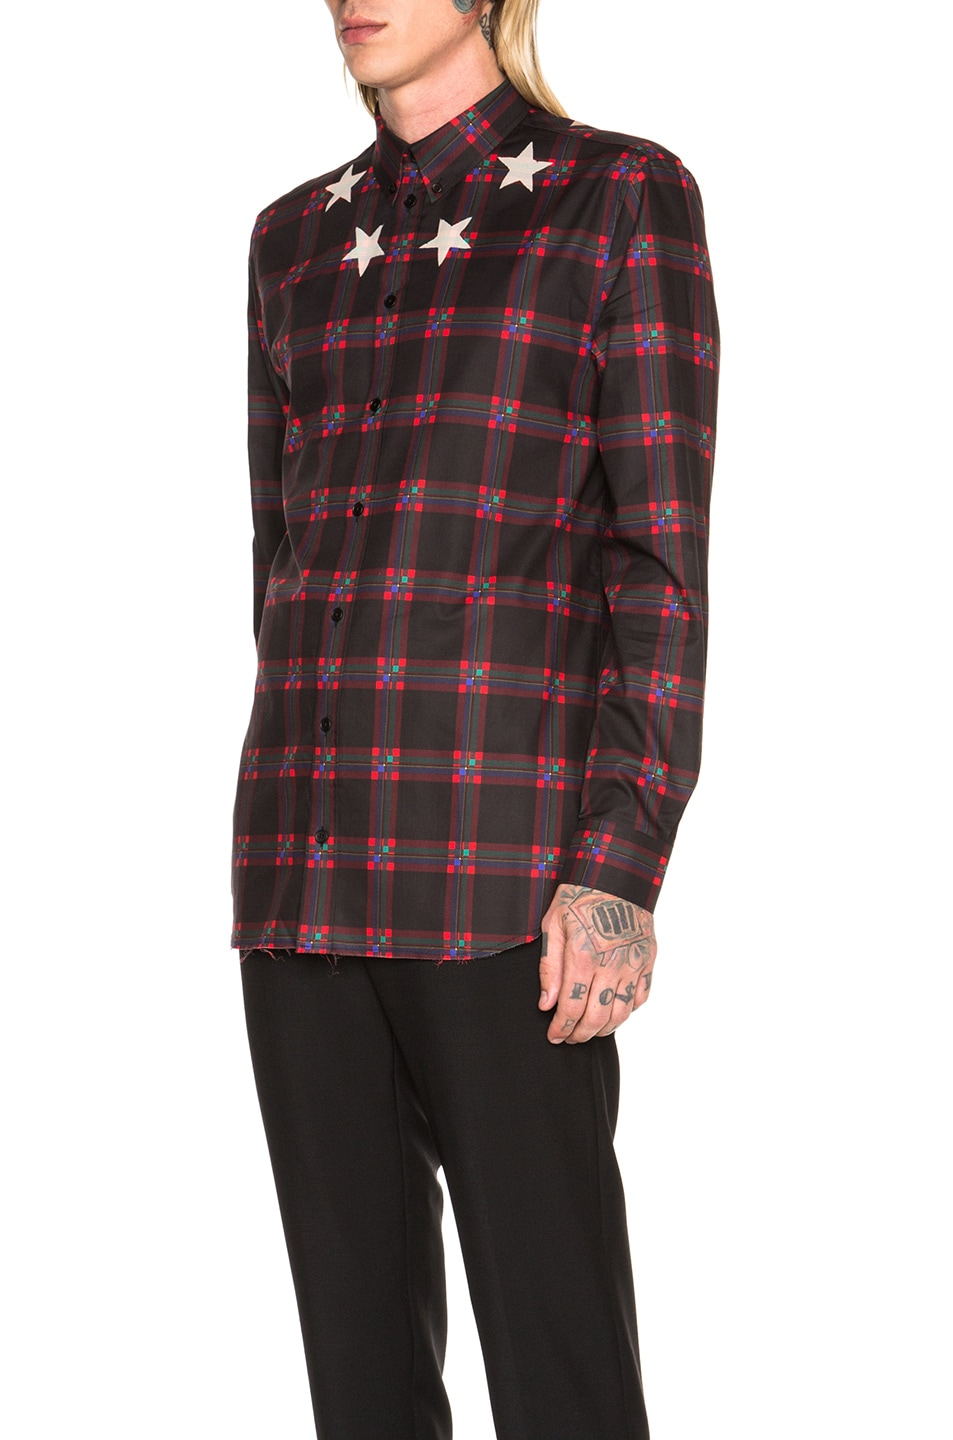 d693ee258b9f Image 2 of Givenchy Star Bleach Plaid Shirt in Black   Red